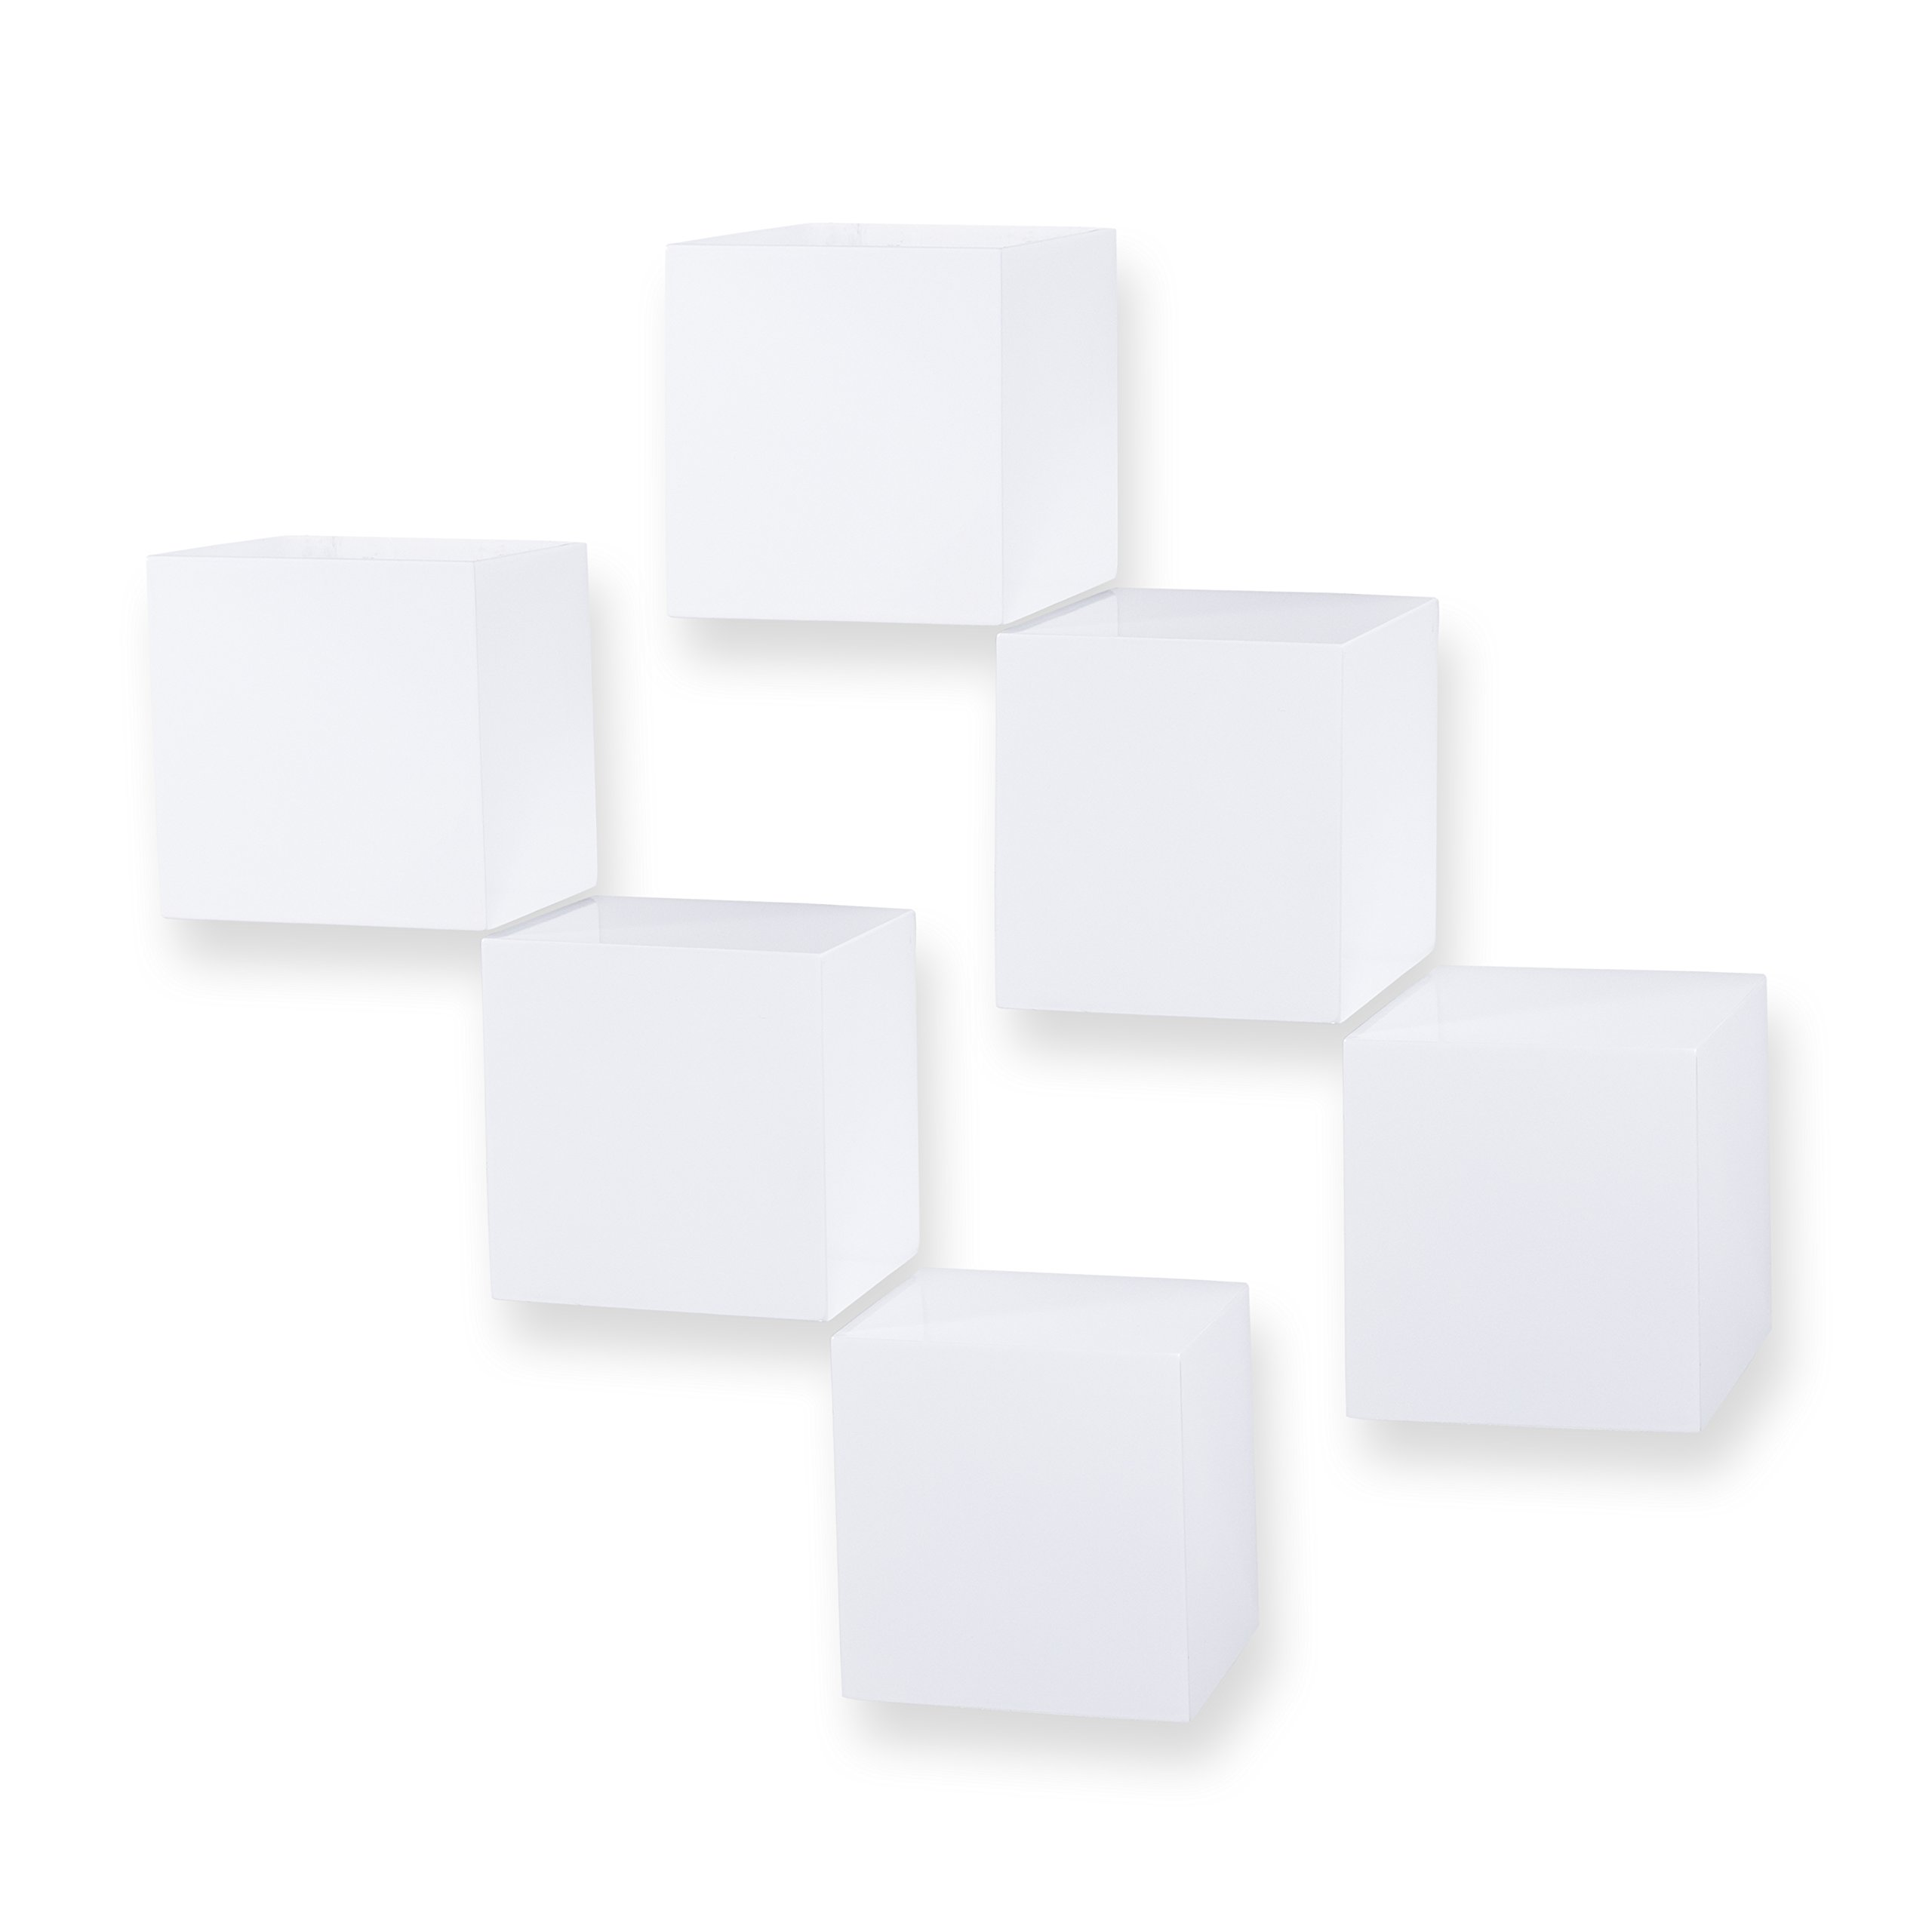 brightmaison Decorative Square Wall Cubes Floating Block Shelves Set of 6 White by brightmaison (Image #1)